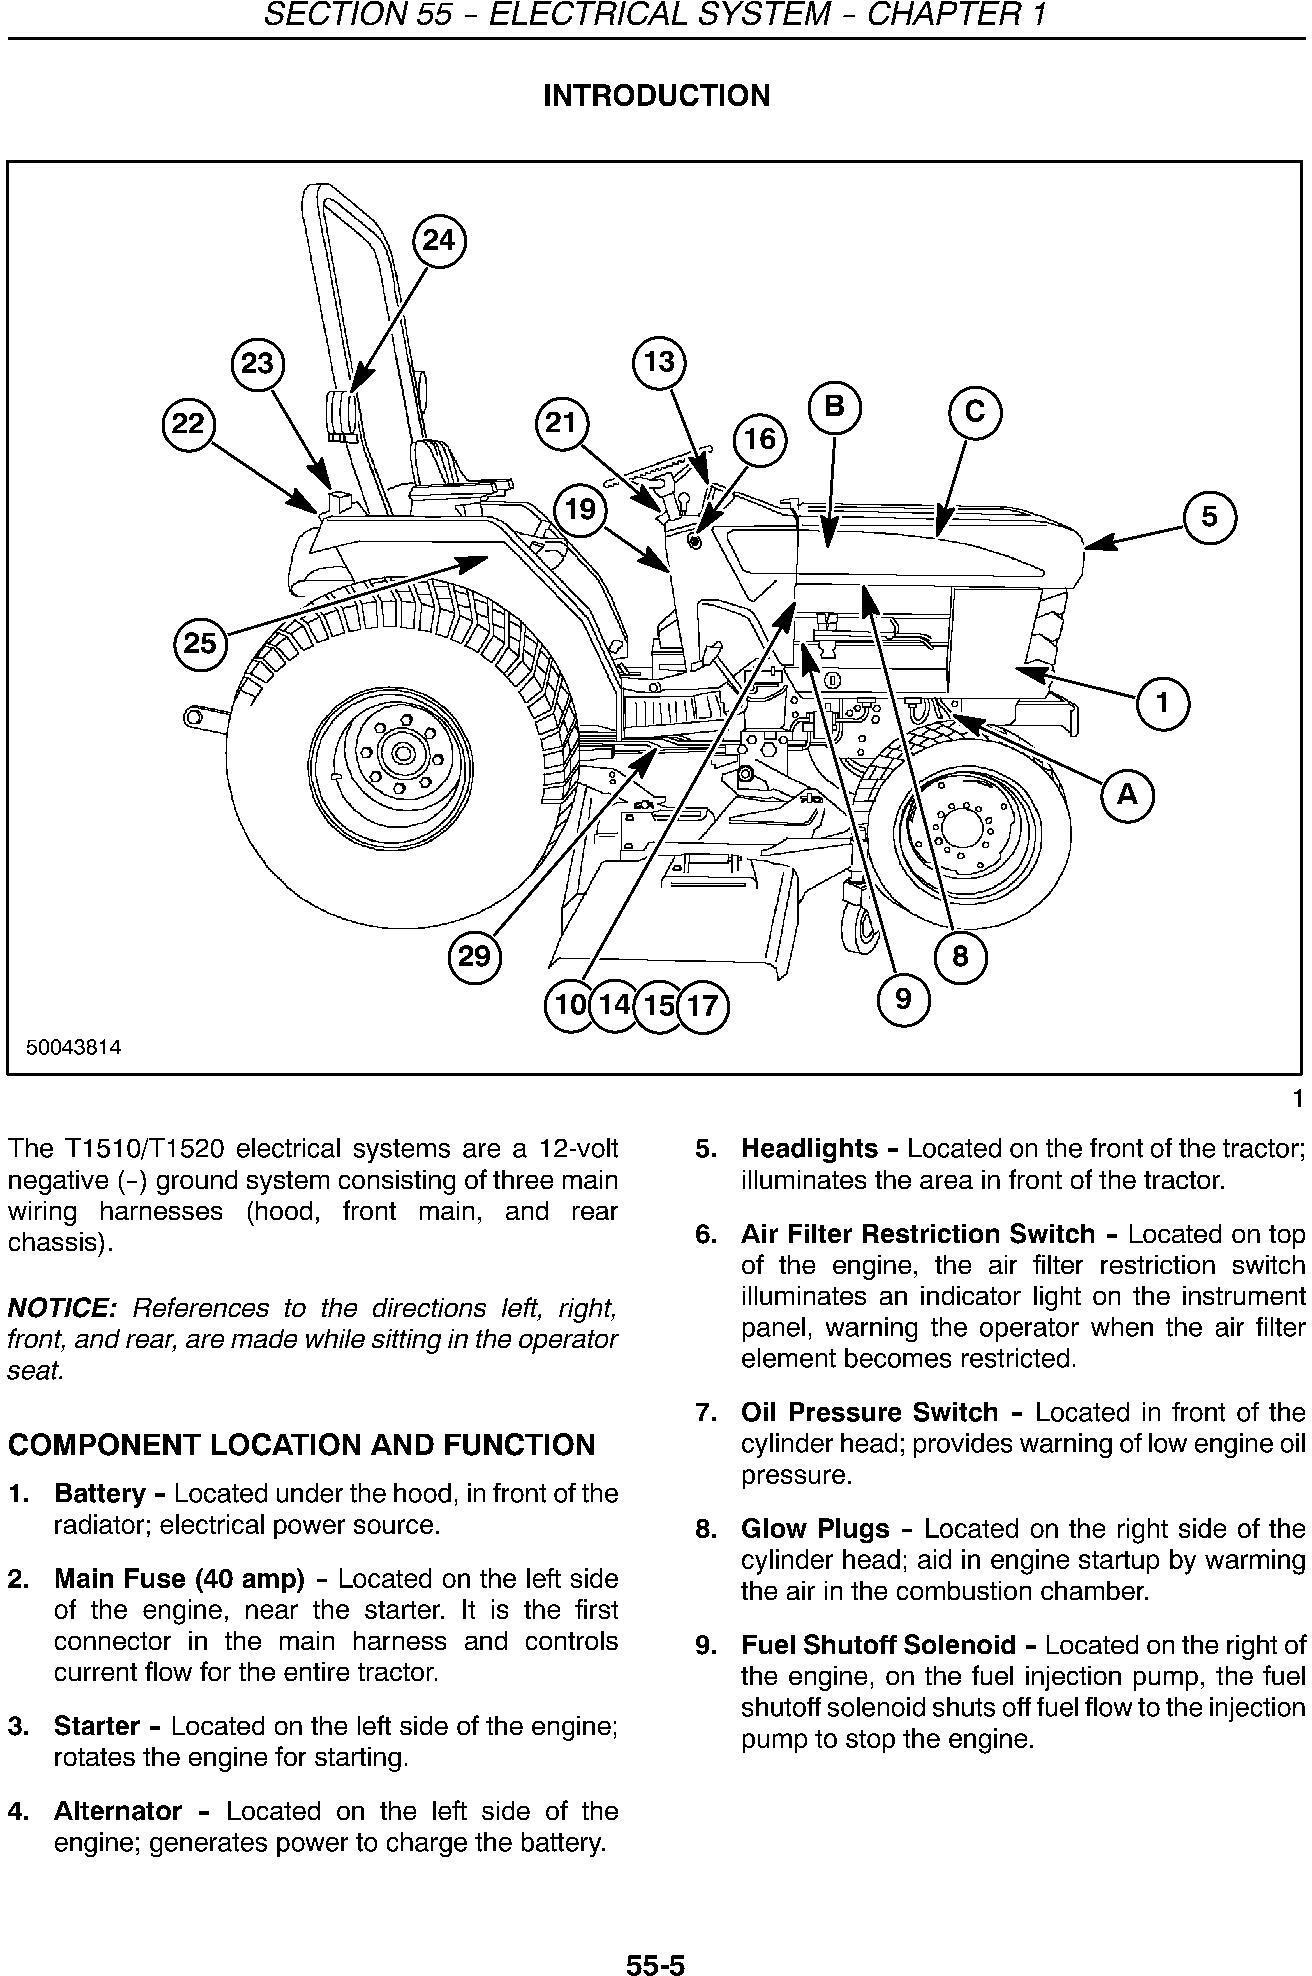 New Holland T1510, T1520 Tractor Service Manual - 3